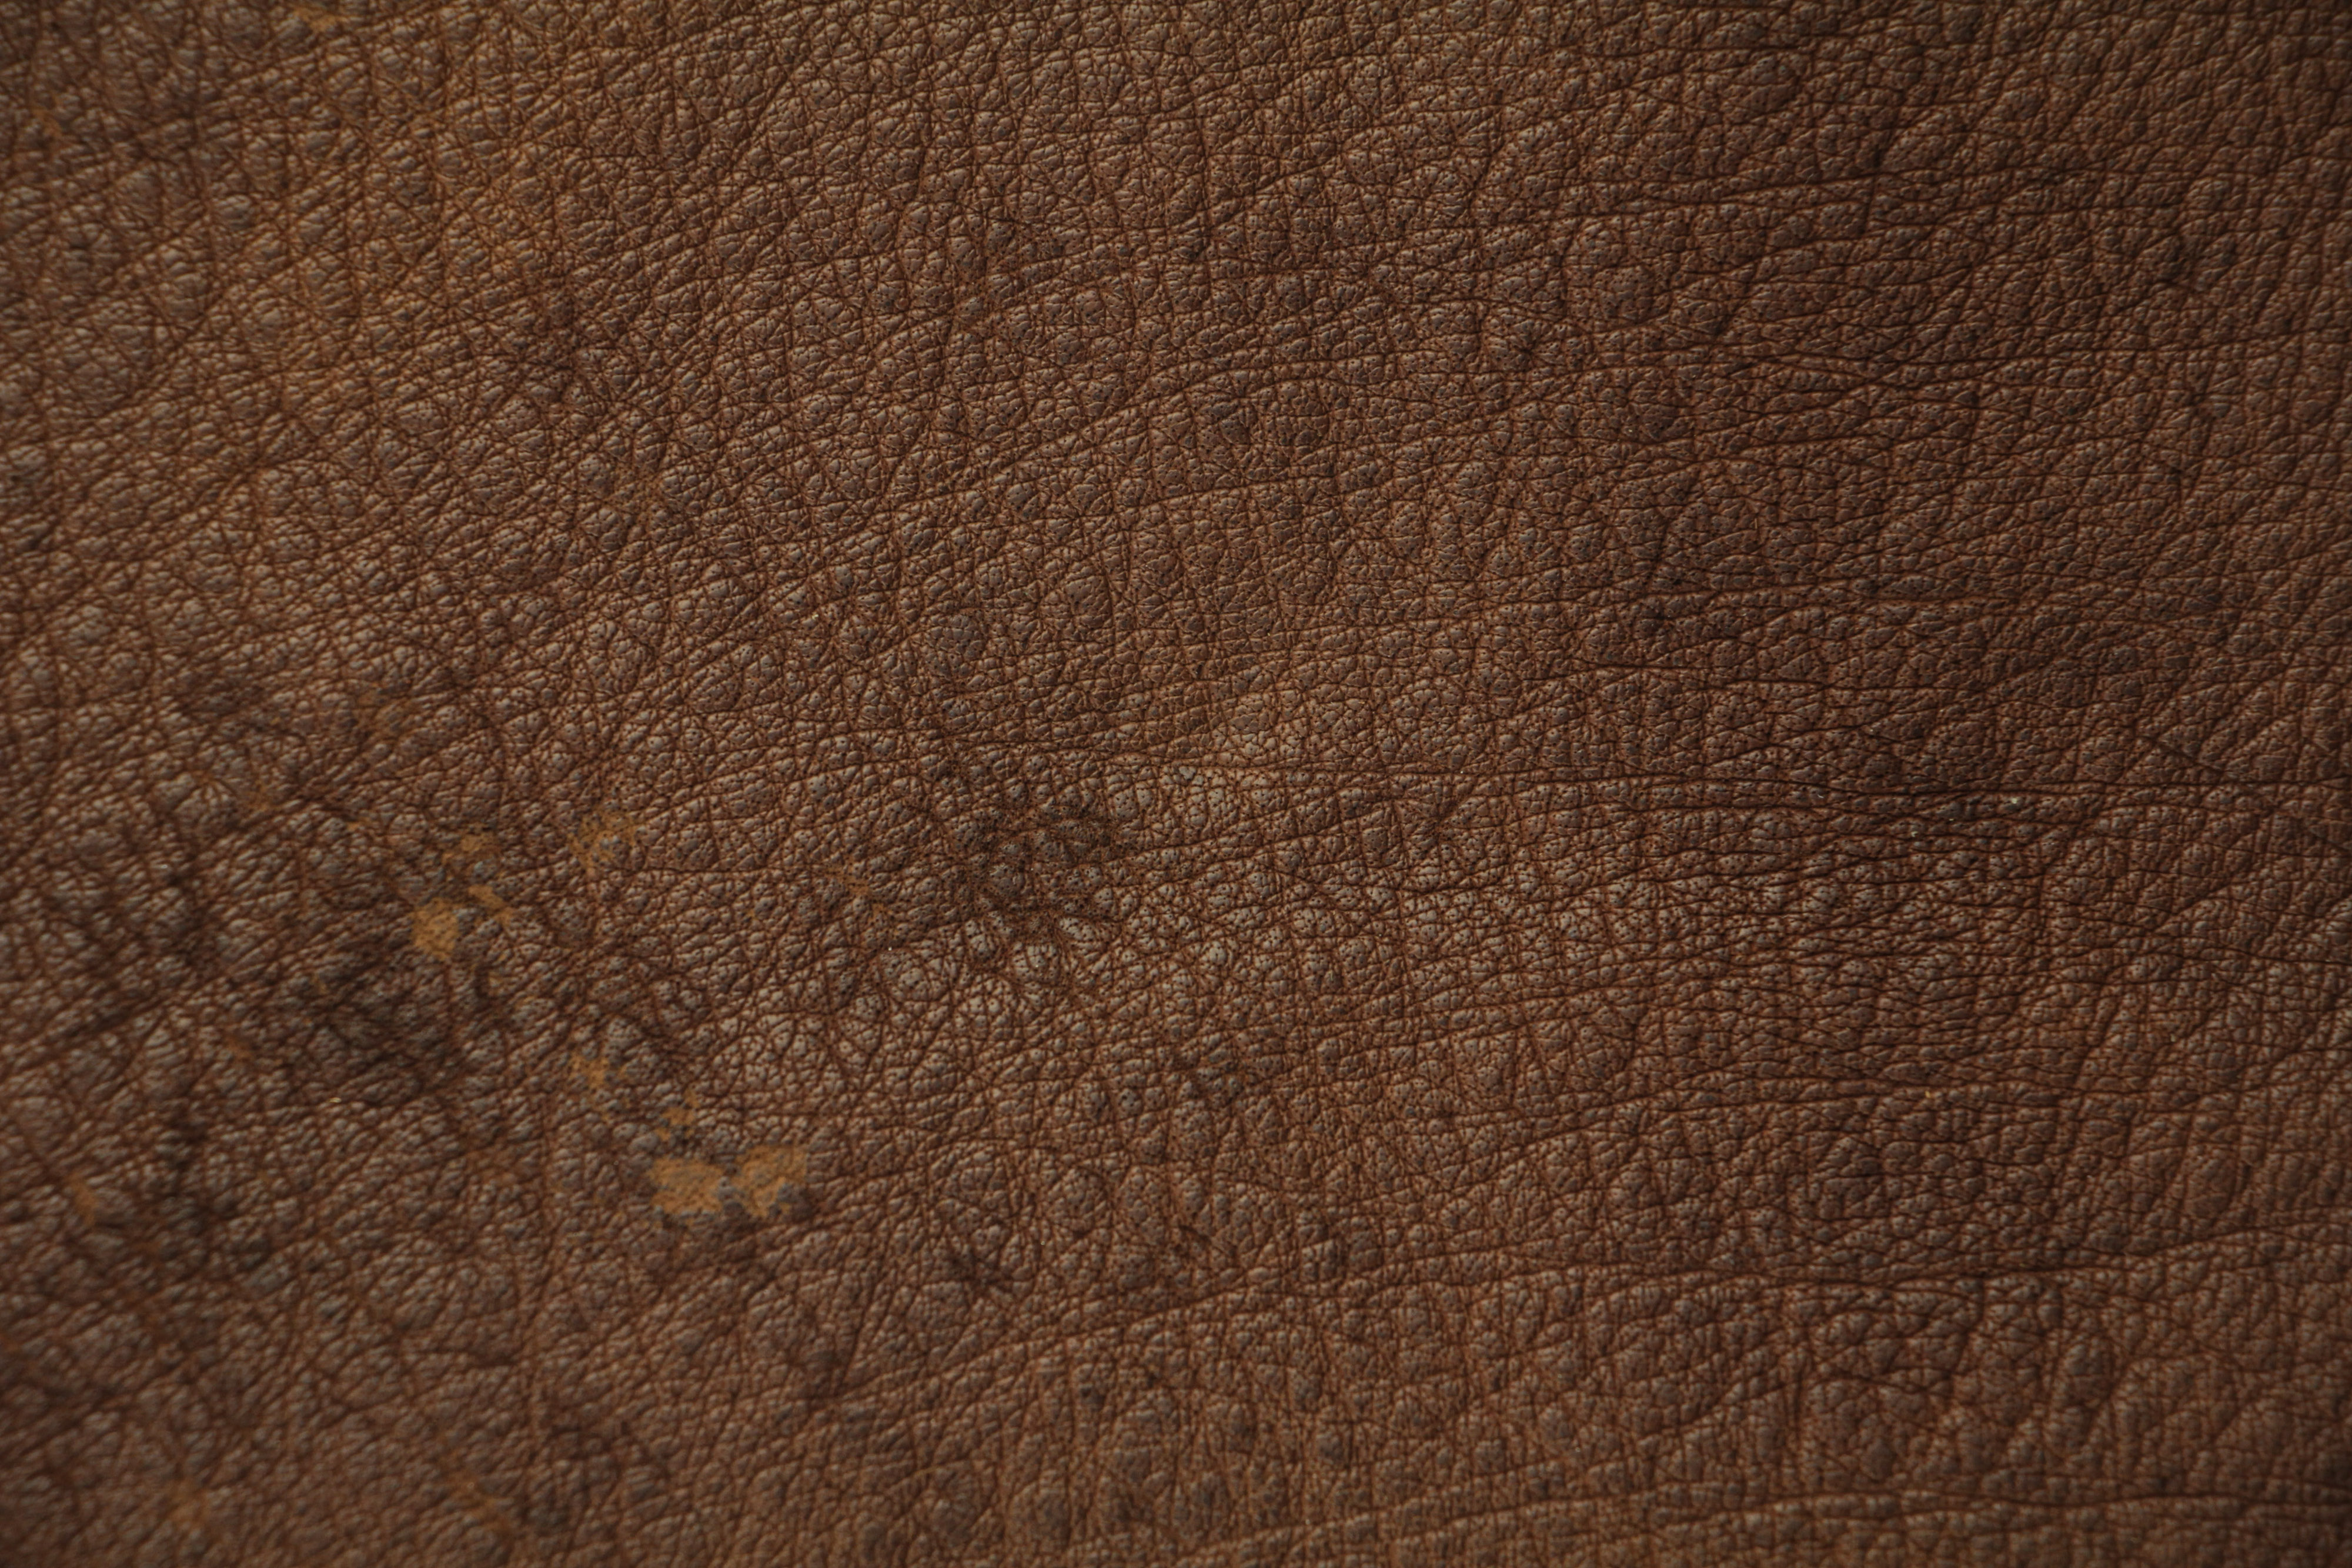 brown leather texture spotted high resolution stock photo wallpaper ...